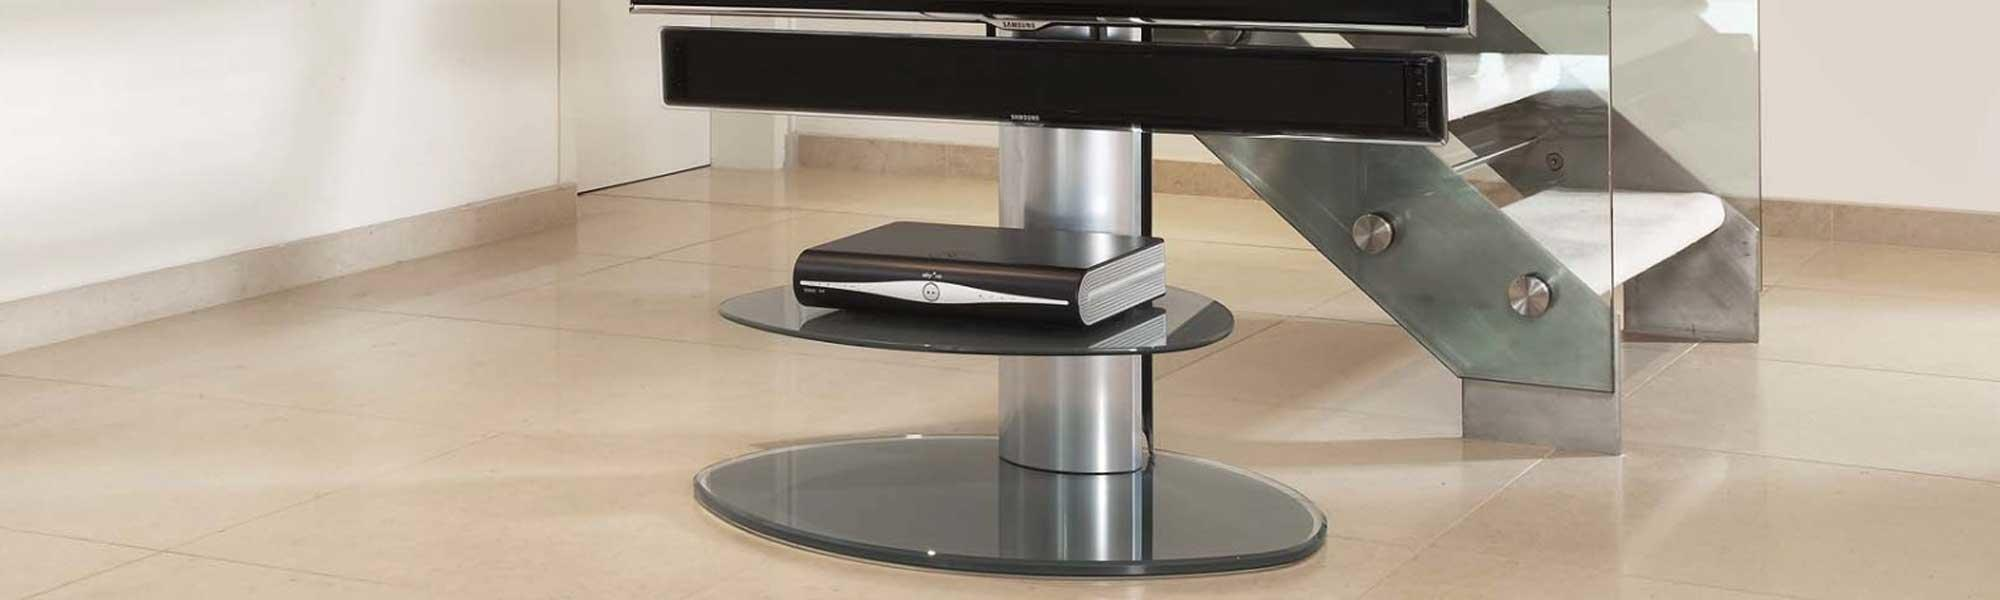 Off The Wall Motion TV Stand with TV Bracket - Silver Glass